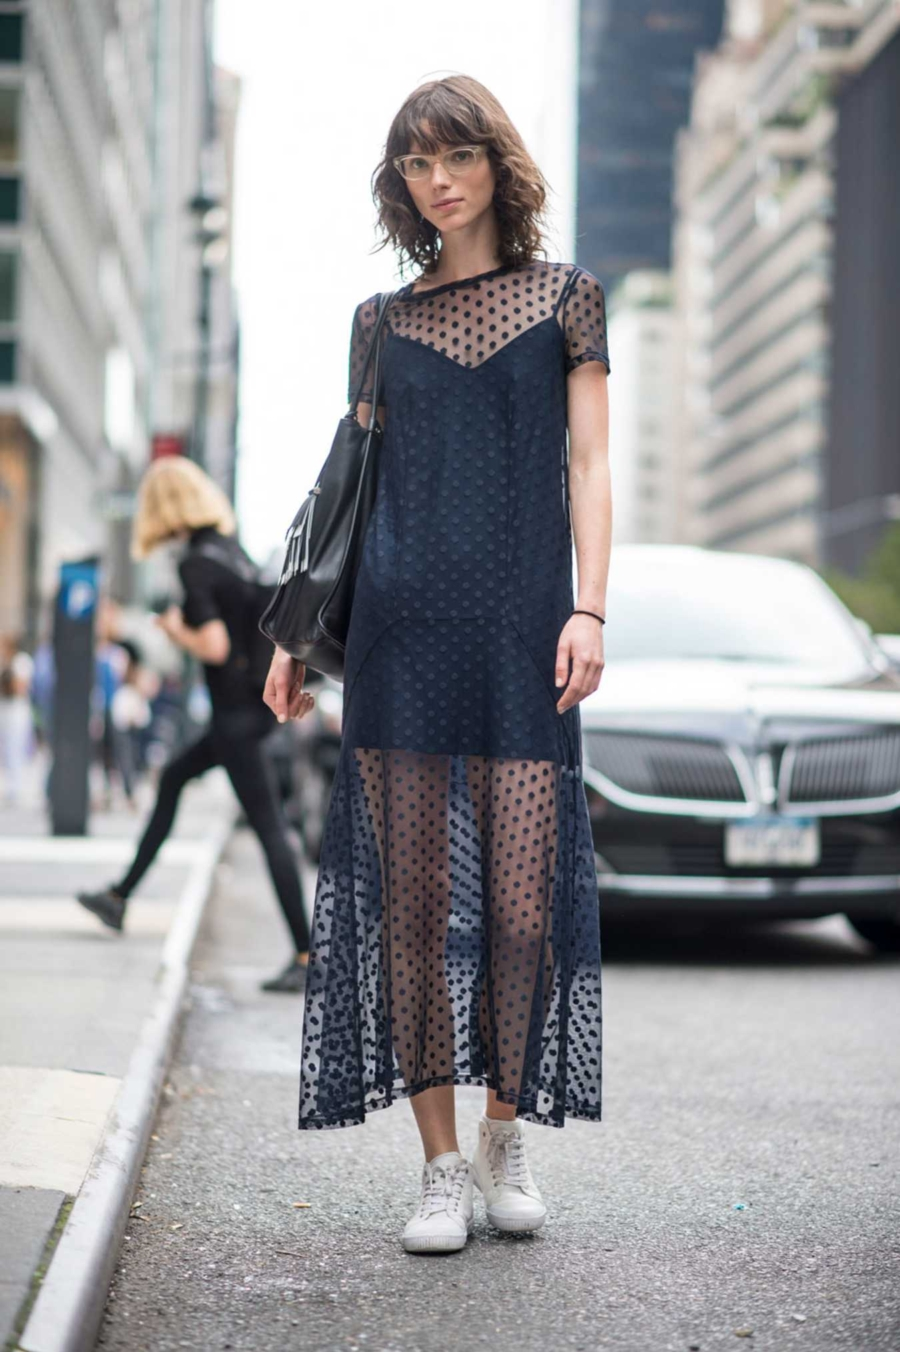 Sneakers with sheer dress - Off Duty Style Outfits Cool Girls Swear By // NotJessFashion.com